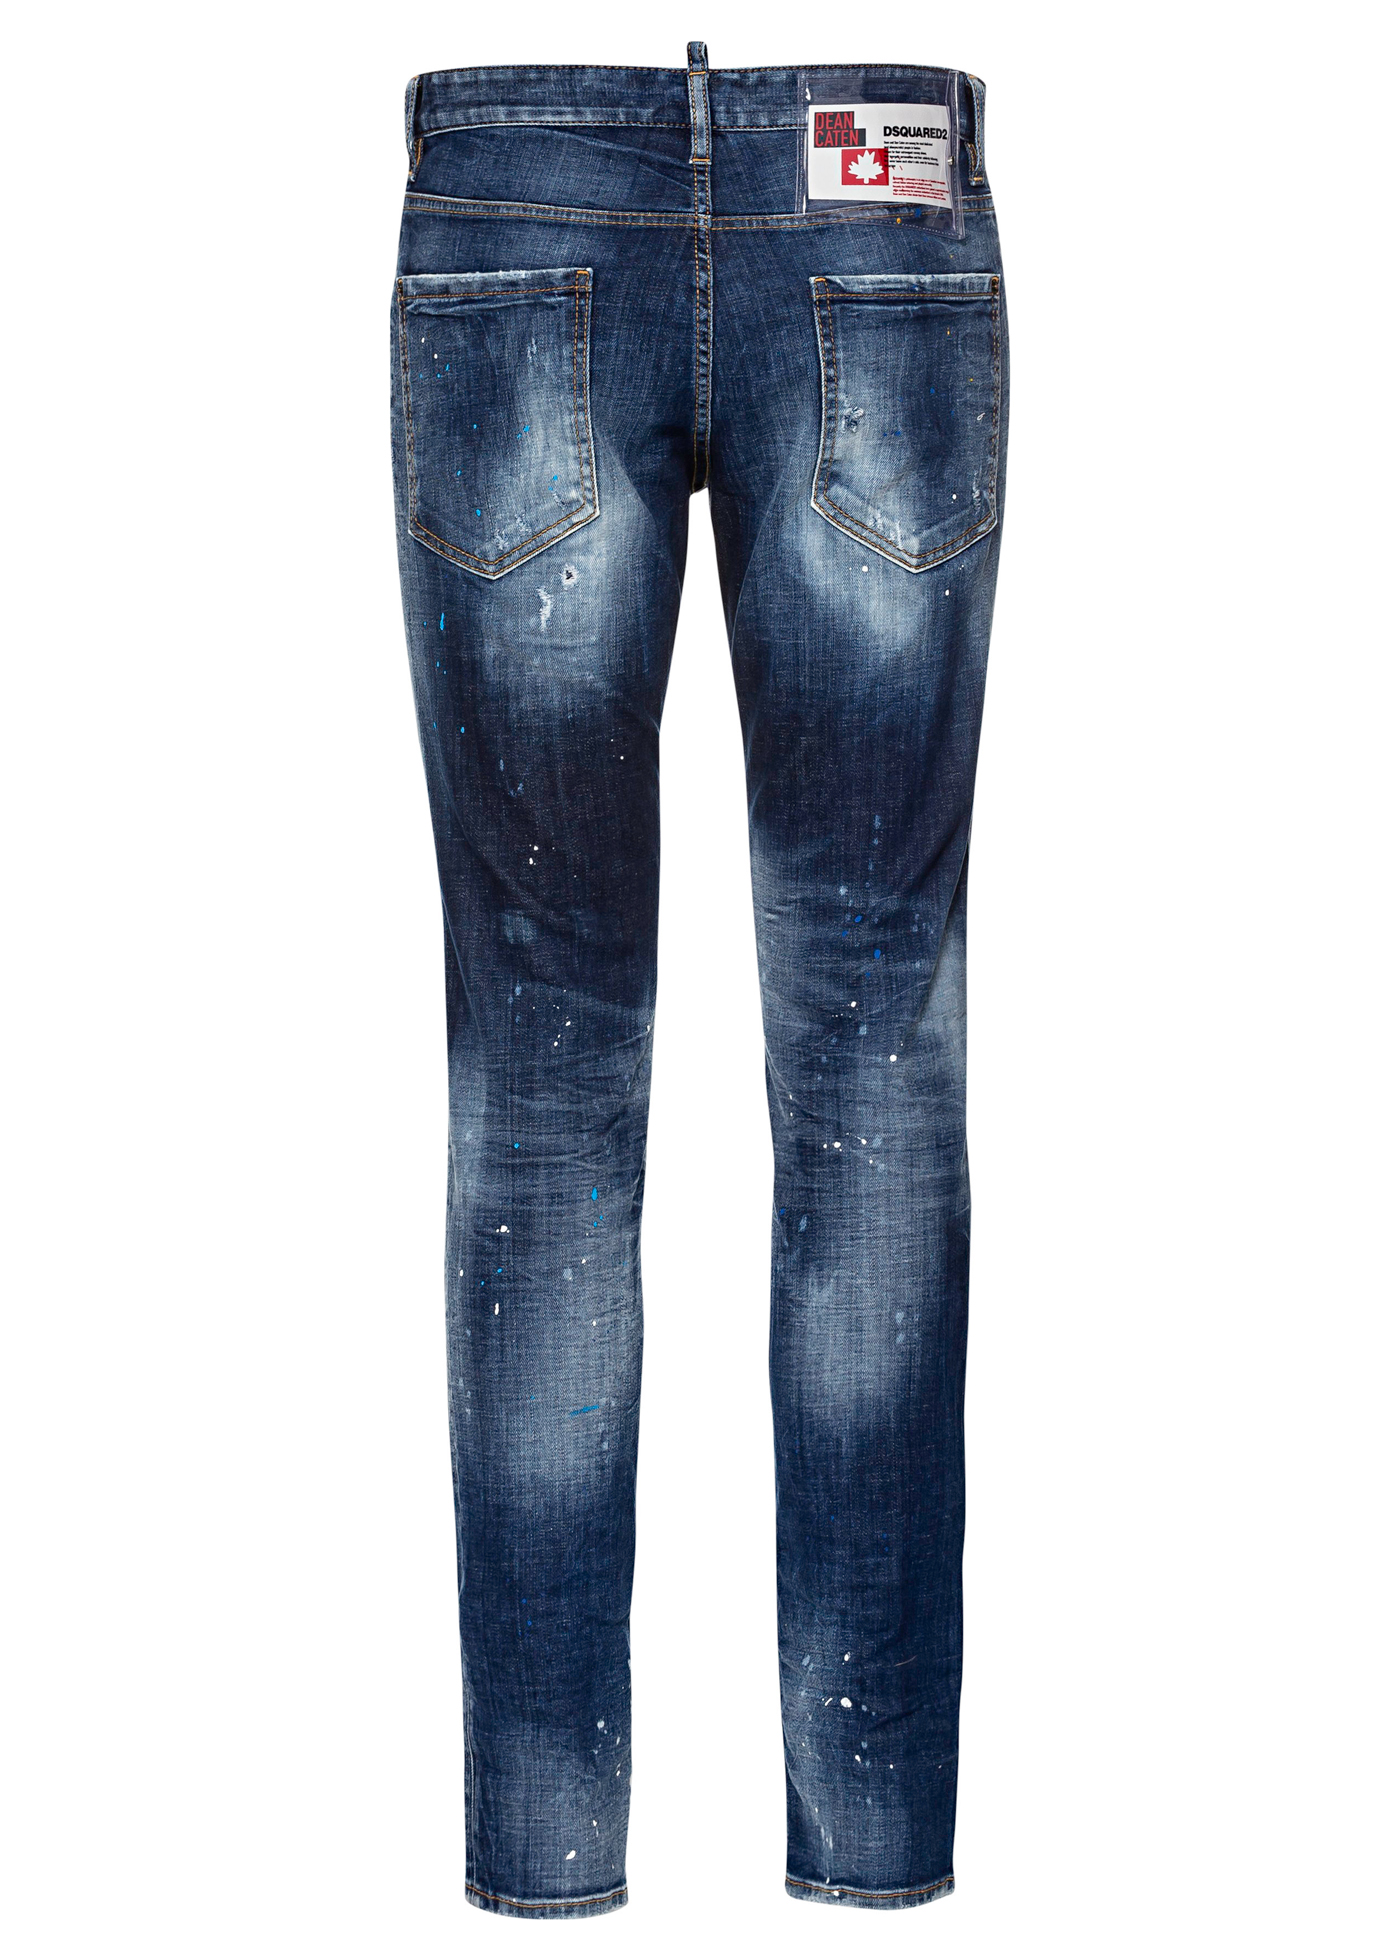 Cool Guy Jeans image number 1